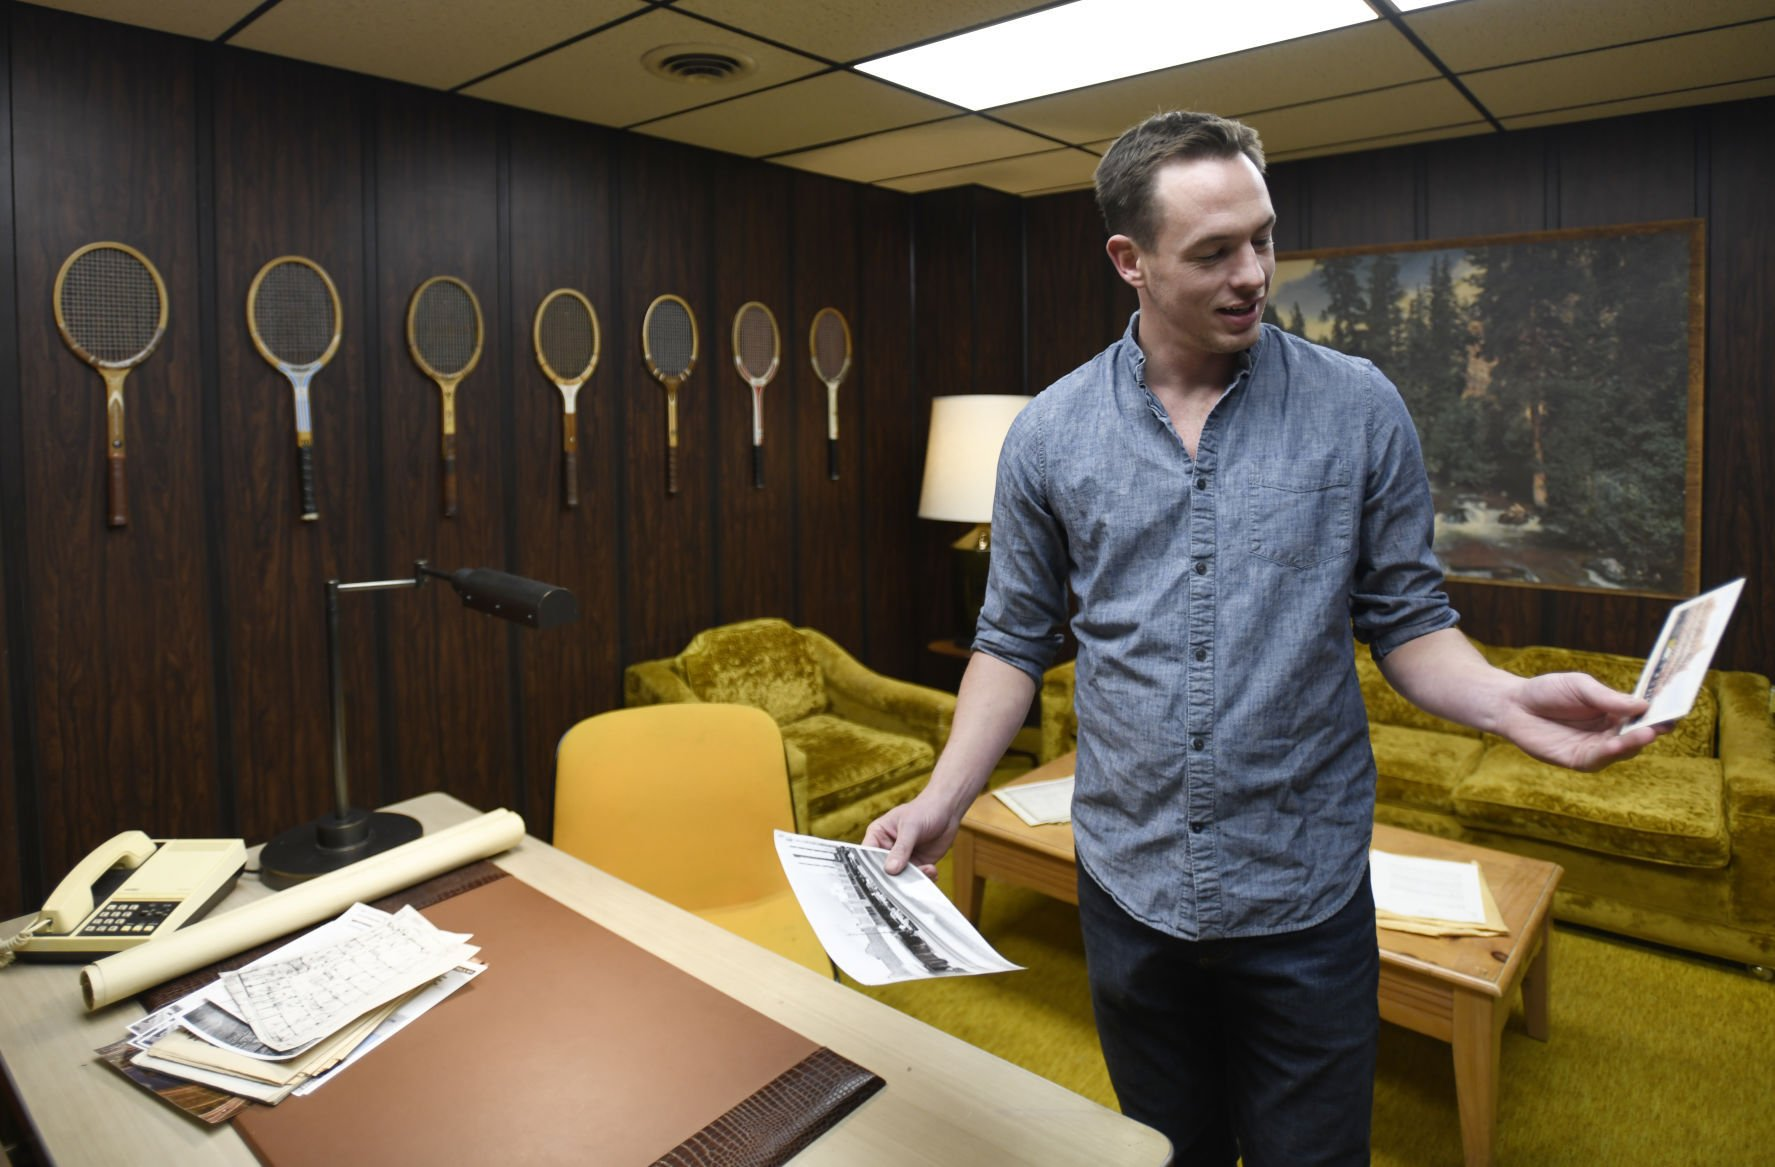 Business moves afoot in downtown Missoula as buildings change